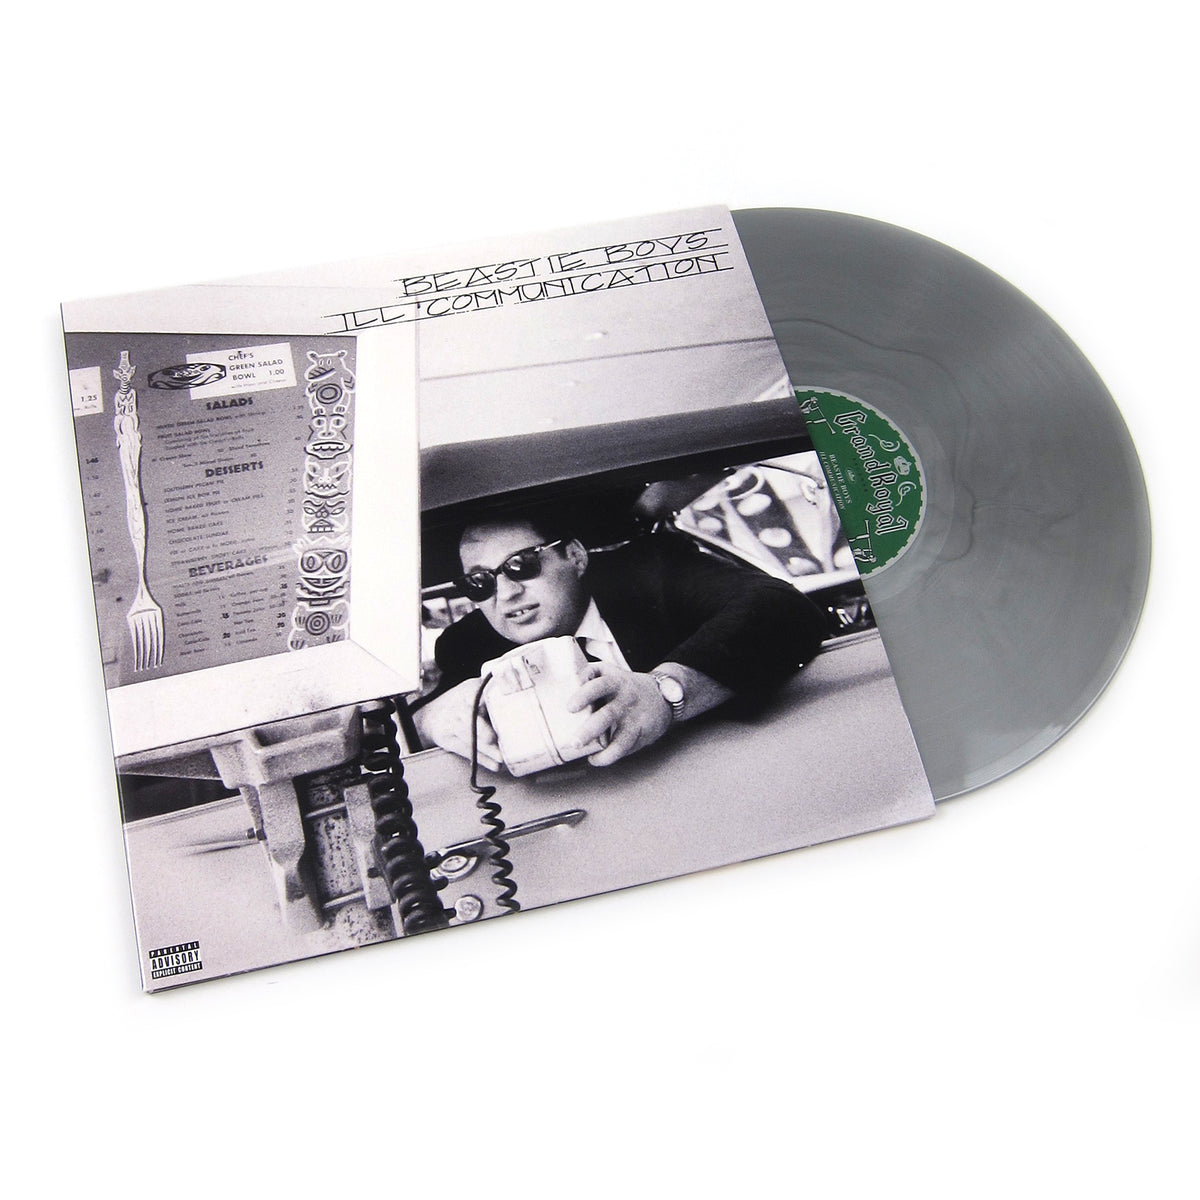 Beastie Boys: Ill Communication (180g, Indie Exclusive Colored Vinyl) Vinyl 2LP